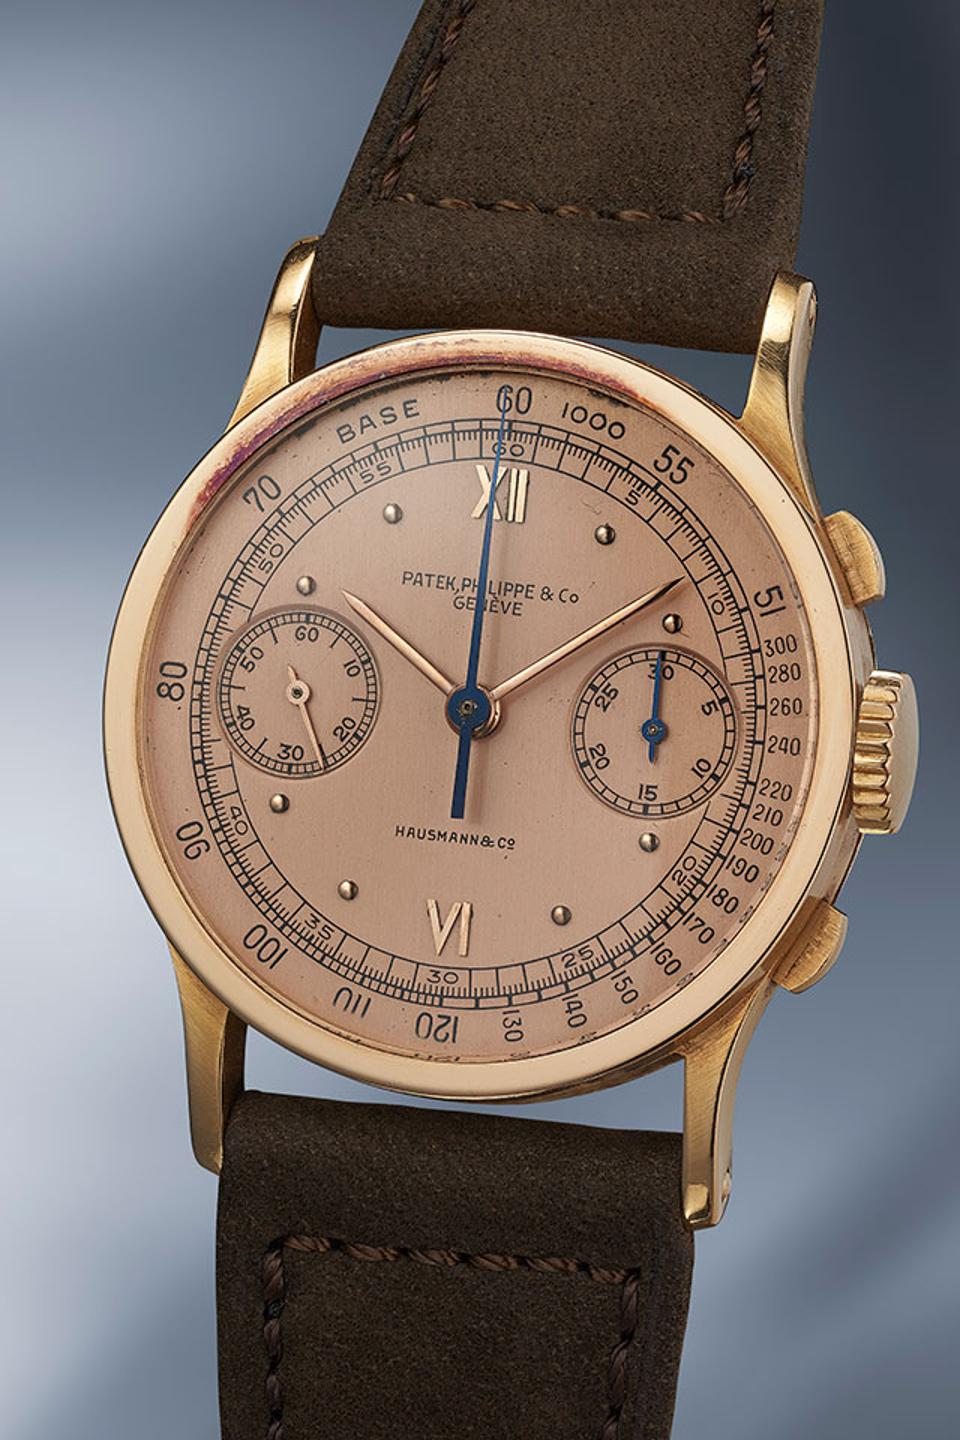 The only publicly known pink gold Patek Philippe chronograph reference 533 with a pink dial that is signed by Italian retailer Hausmann.